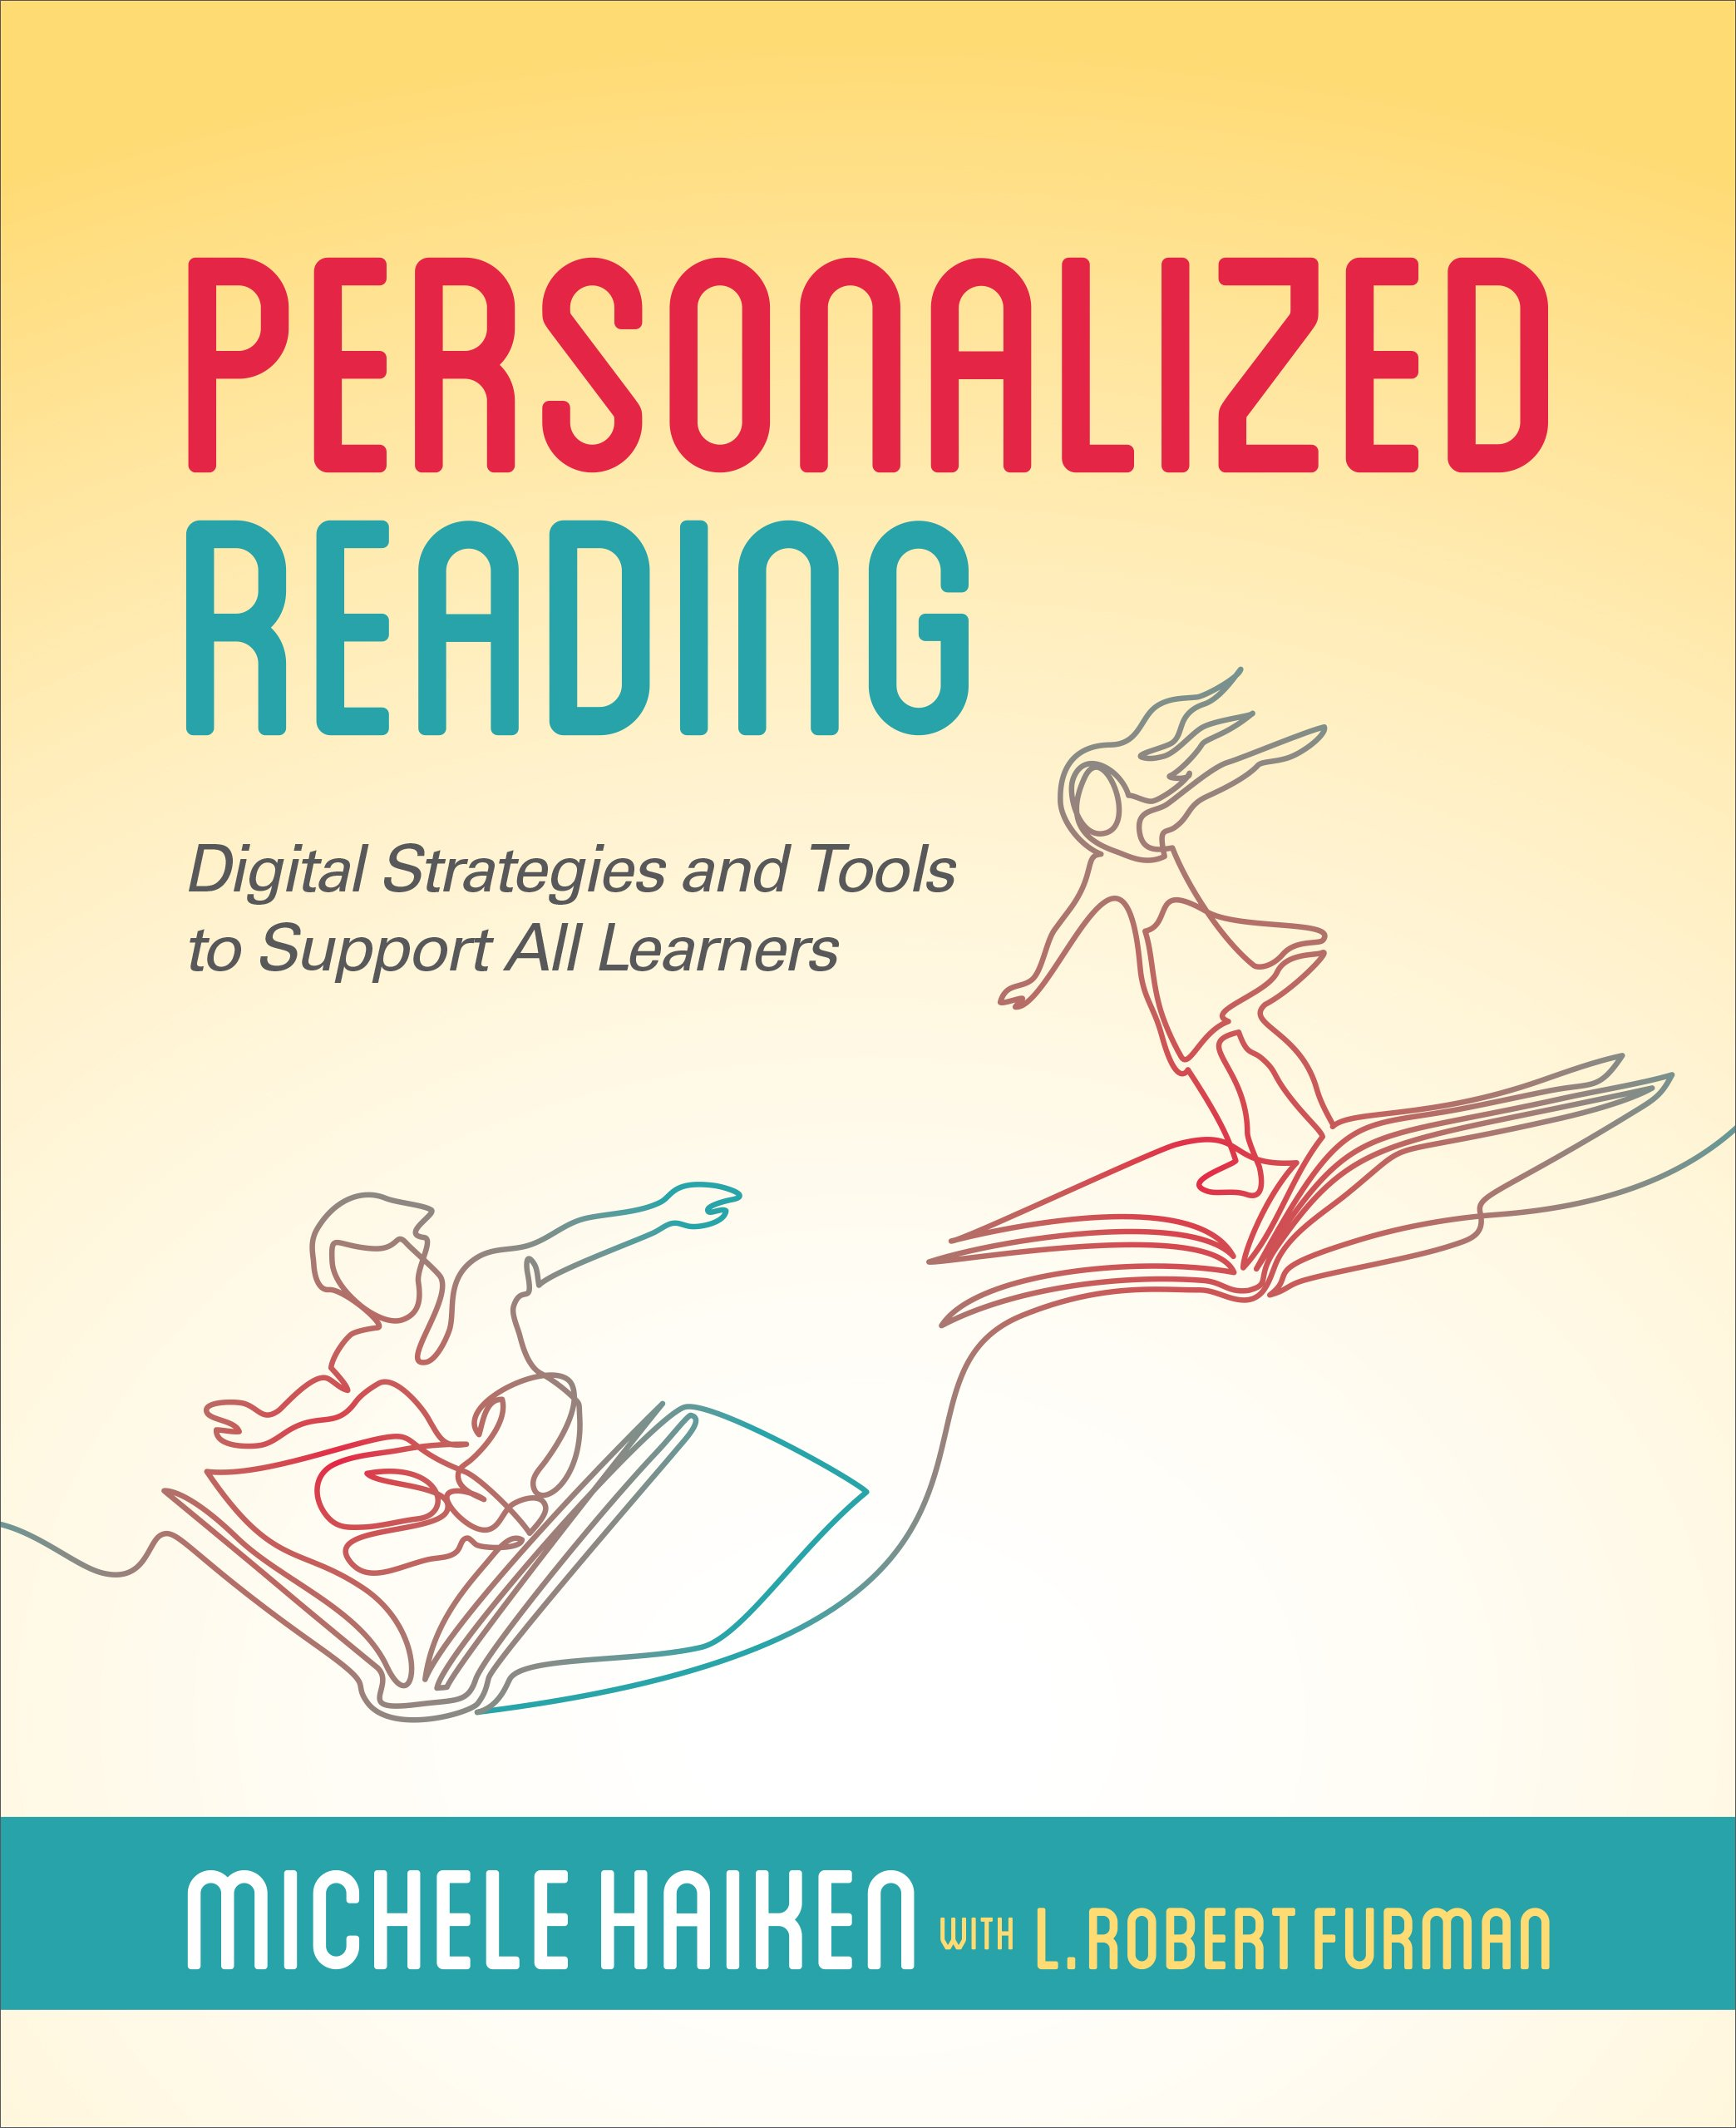 Personalized Reading: Digital Strategies and Tools to Support All Learners ebook